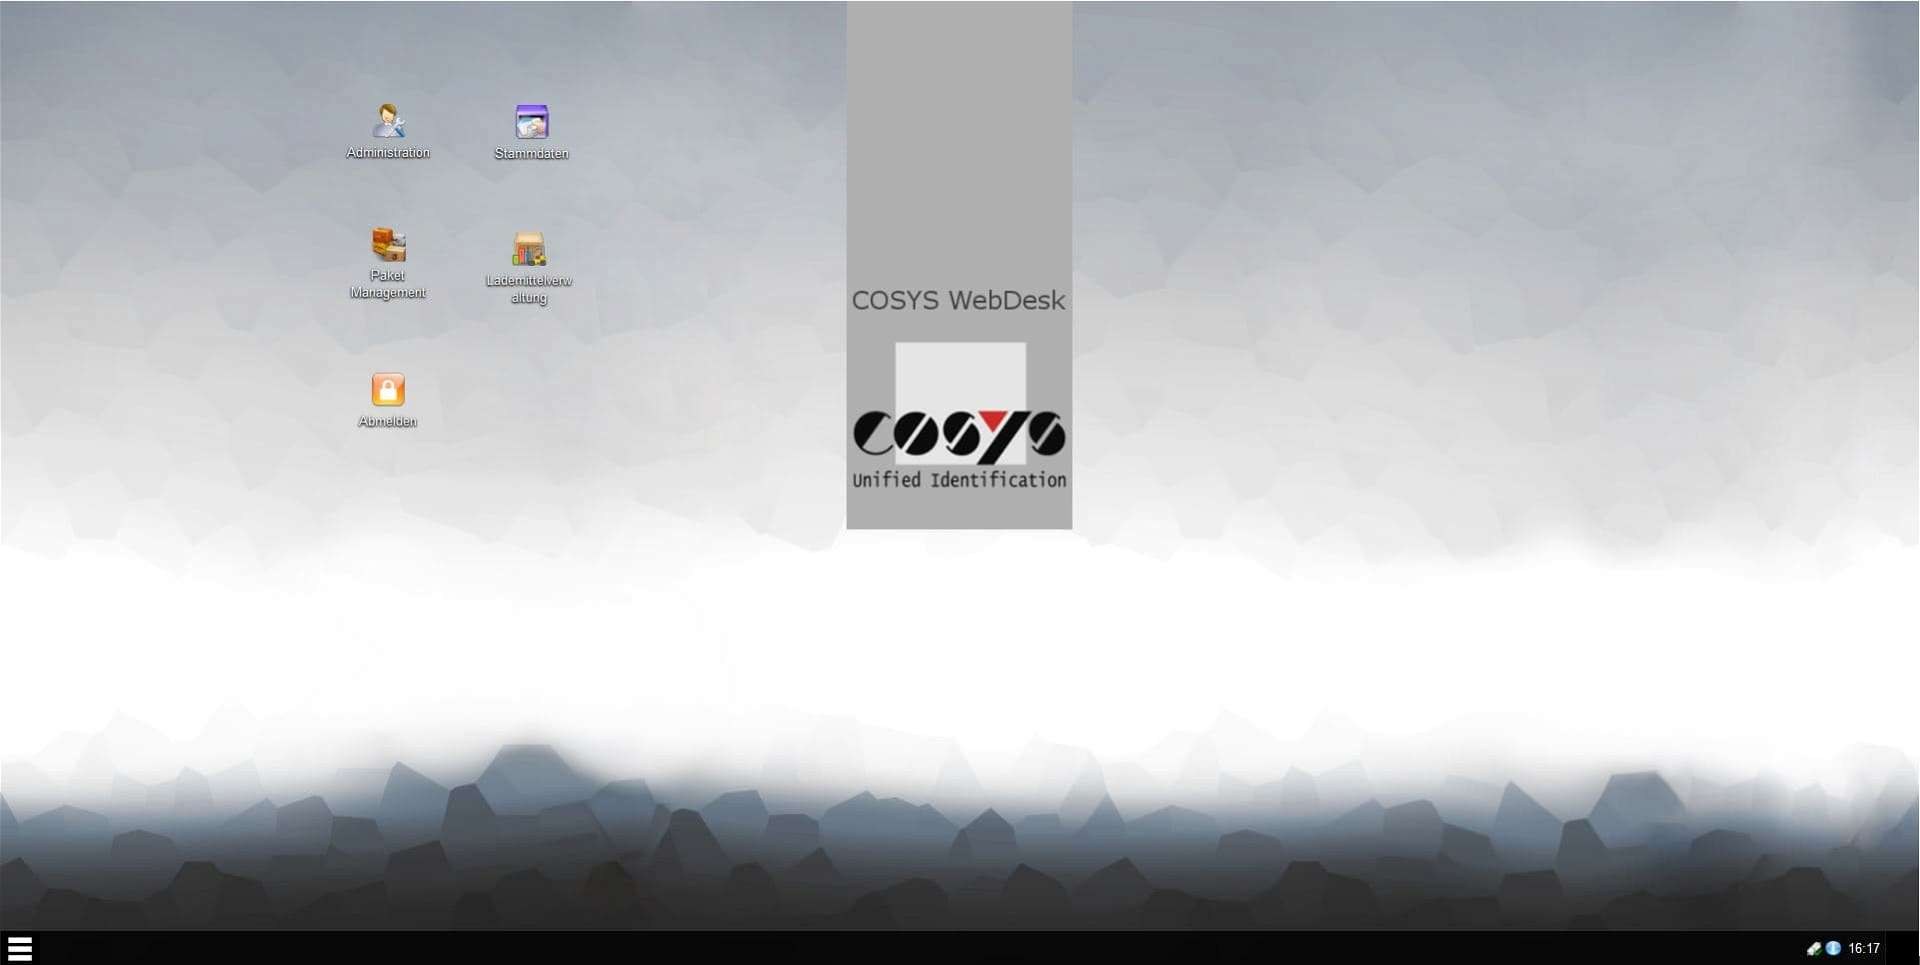 COSYS WebDesk Transport